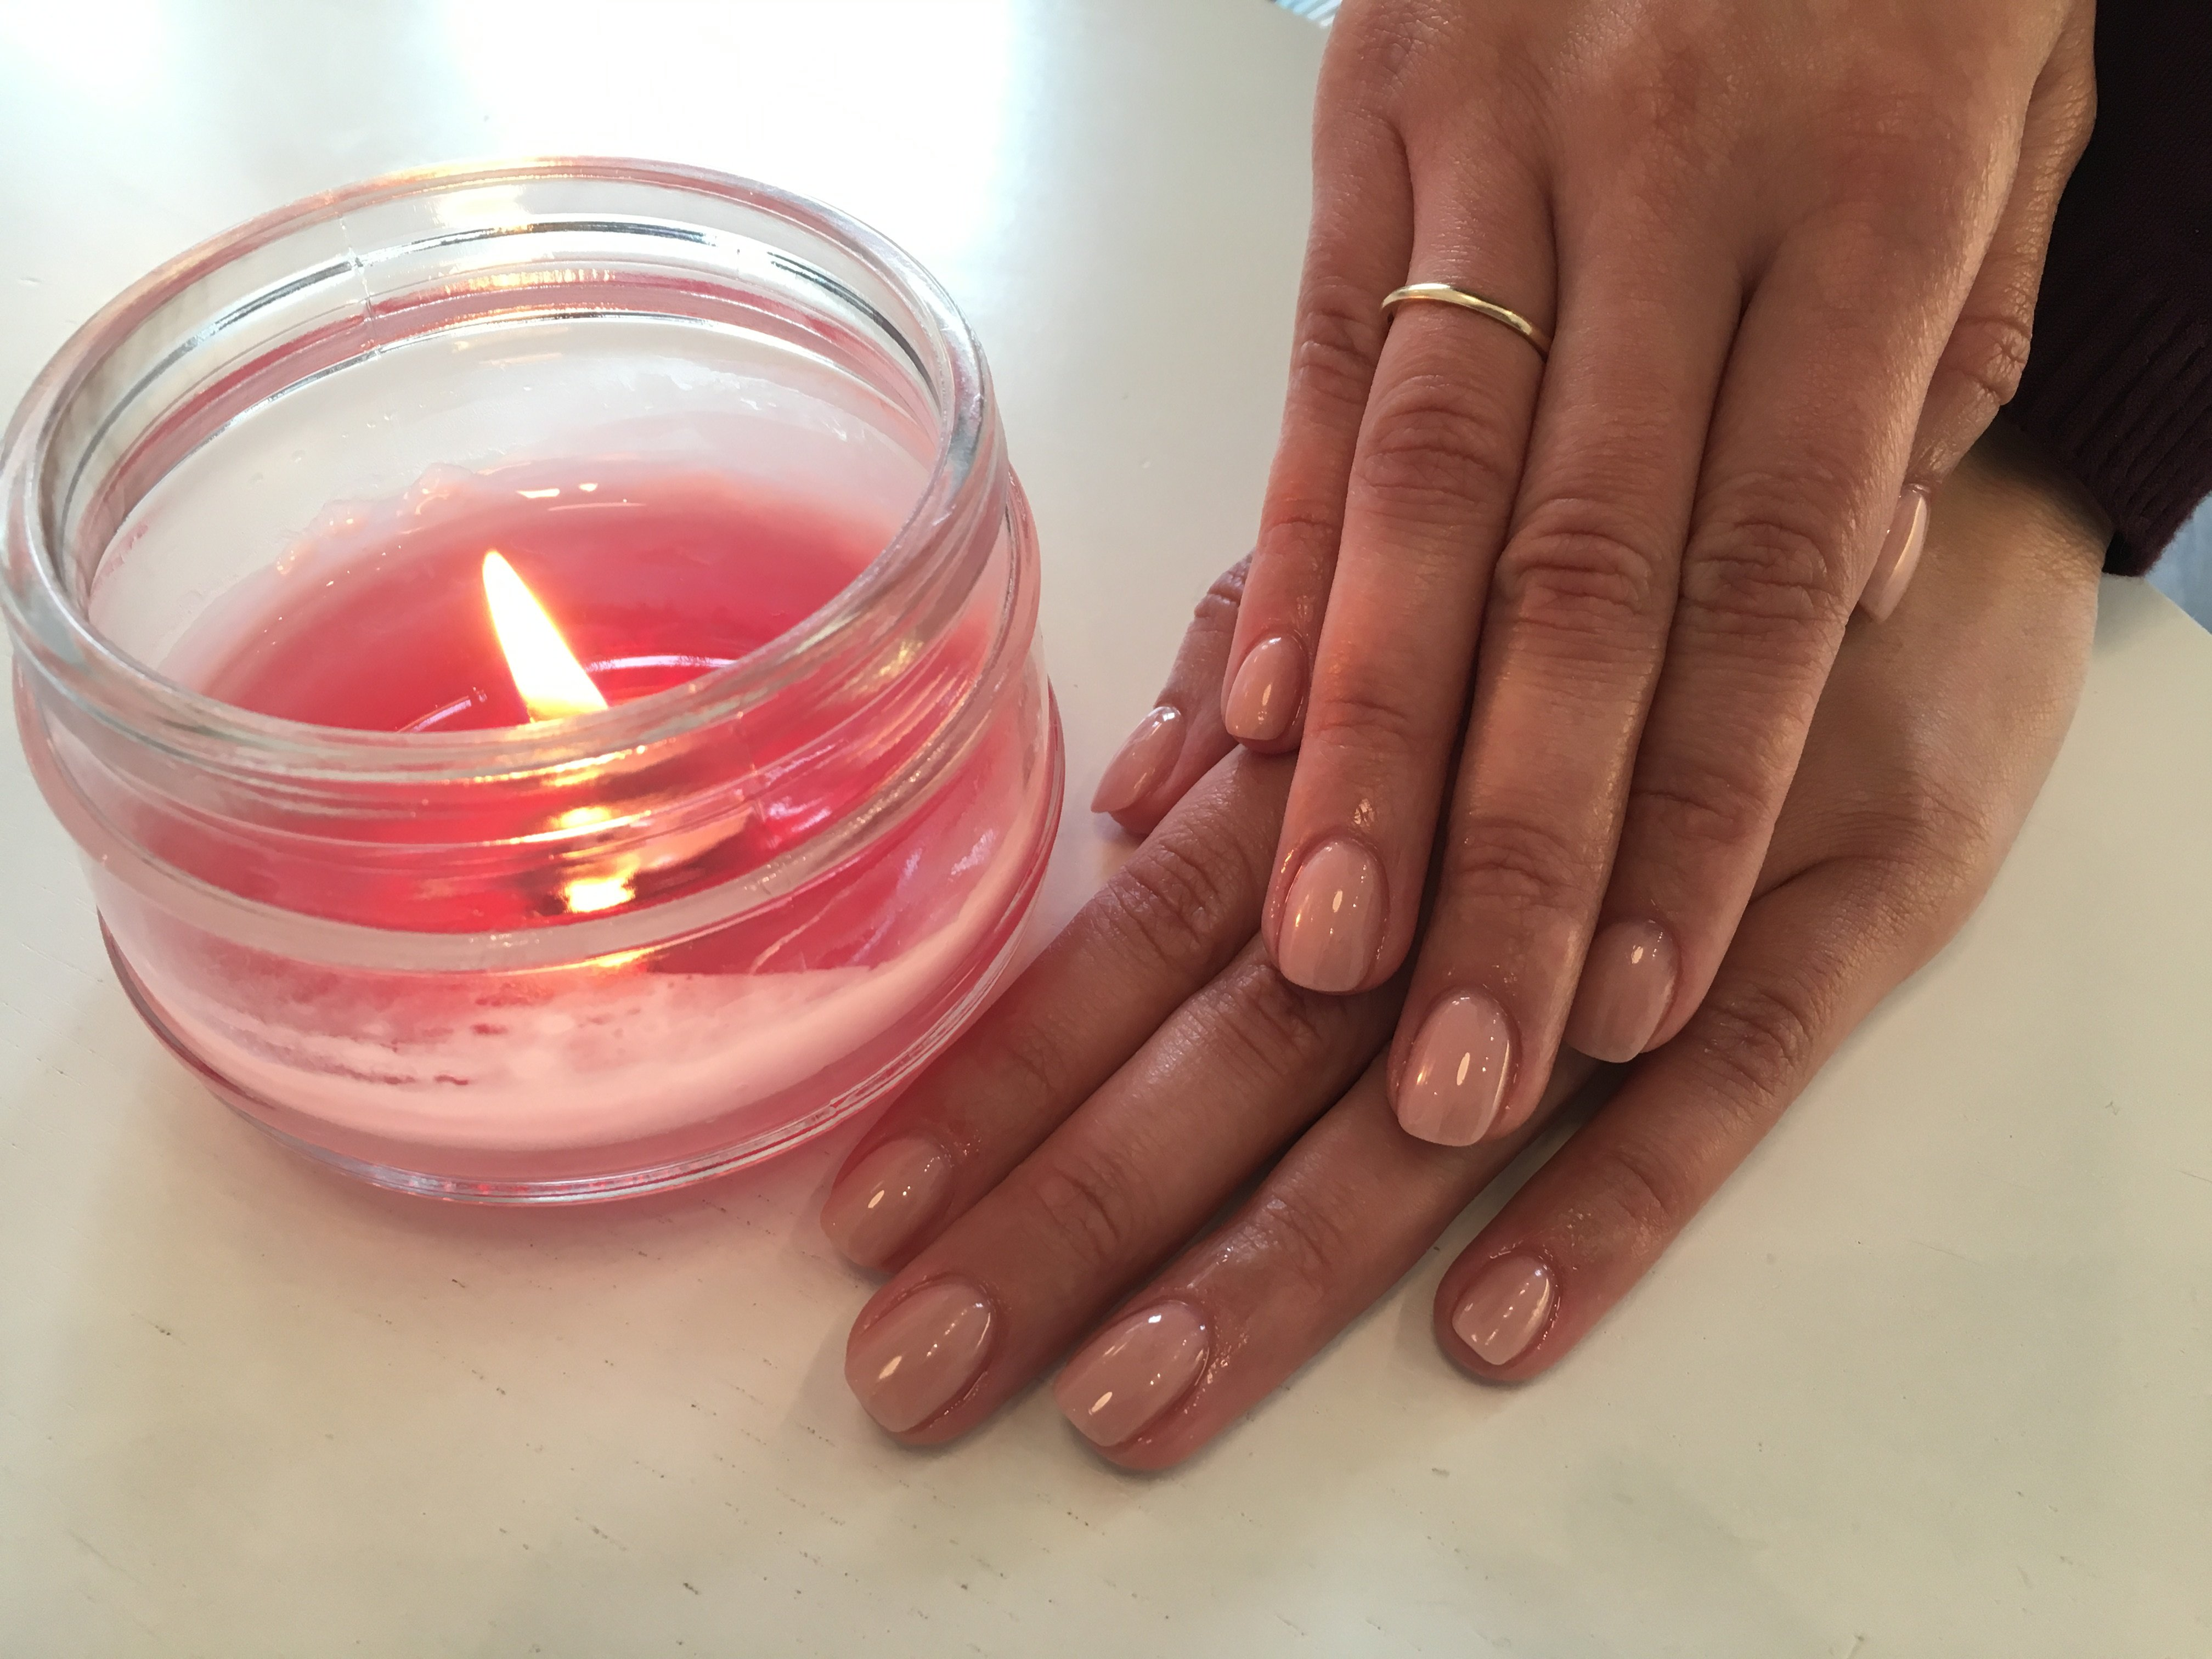 Care 4 Your Nails Beauty Salon Acryl Nagels Foto 5 Care 4 Your Nails Beauty Salon